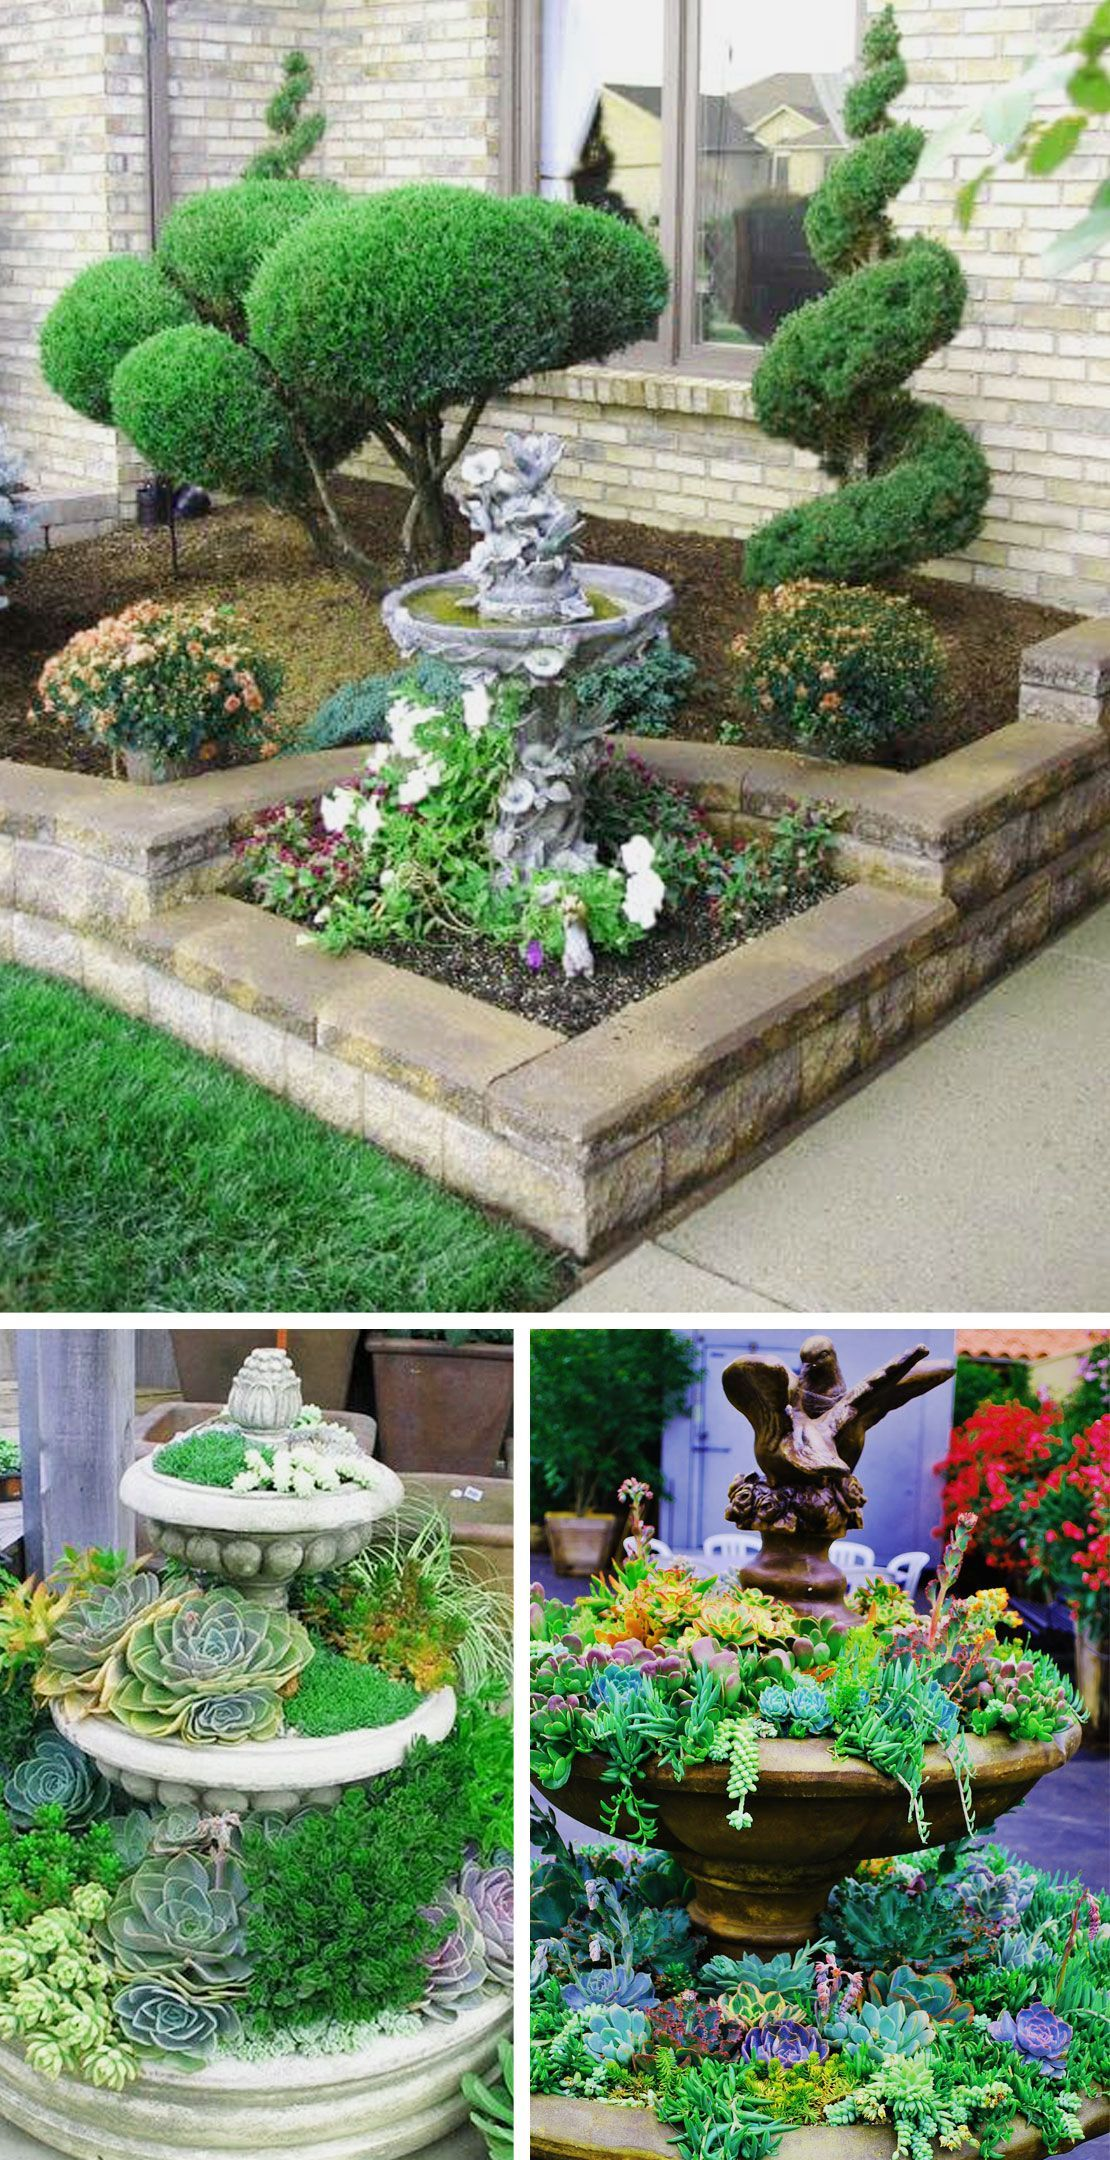 10 Small Urban Garden Ideas, Amazing and also Stunning ... on Small Urban Patio Ideas  id=71839